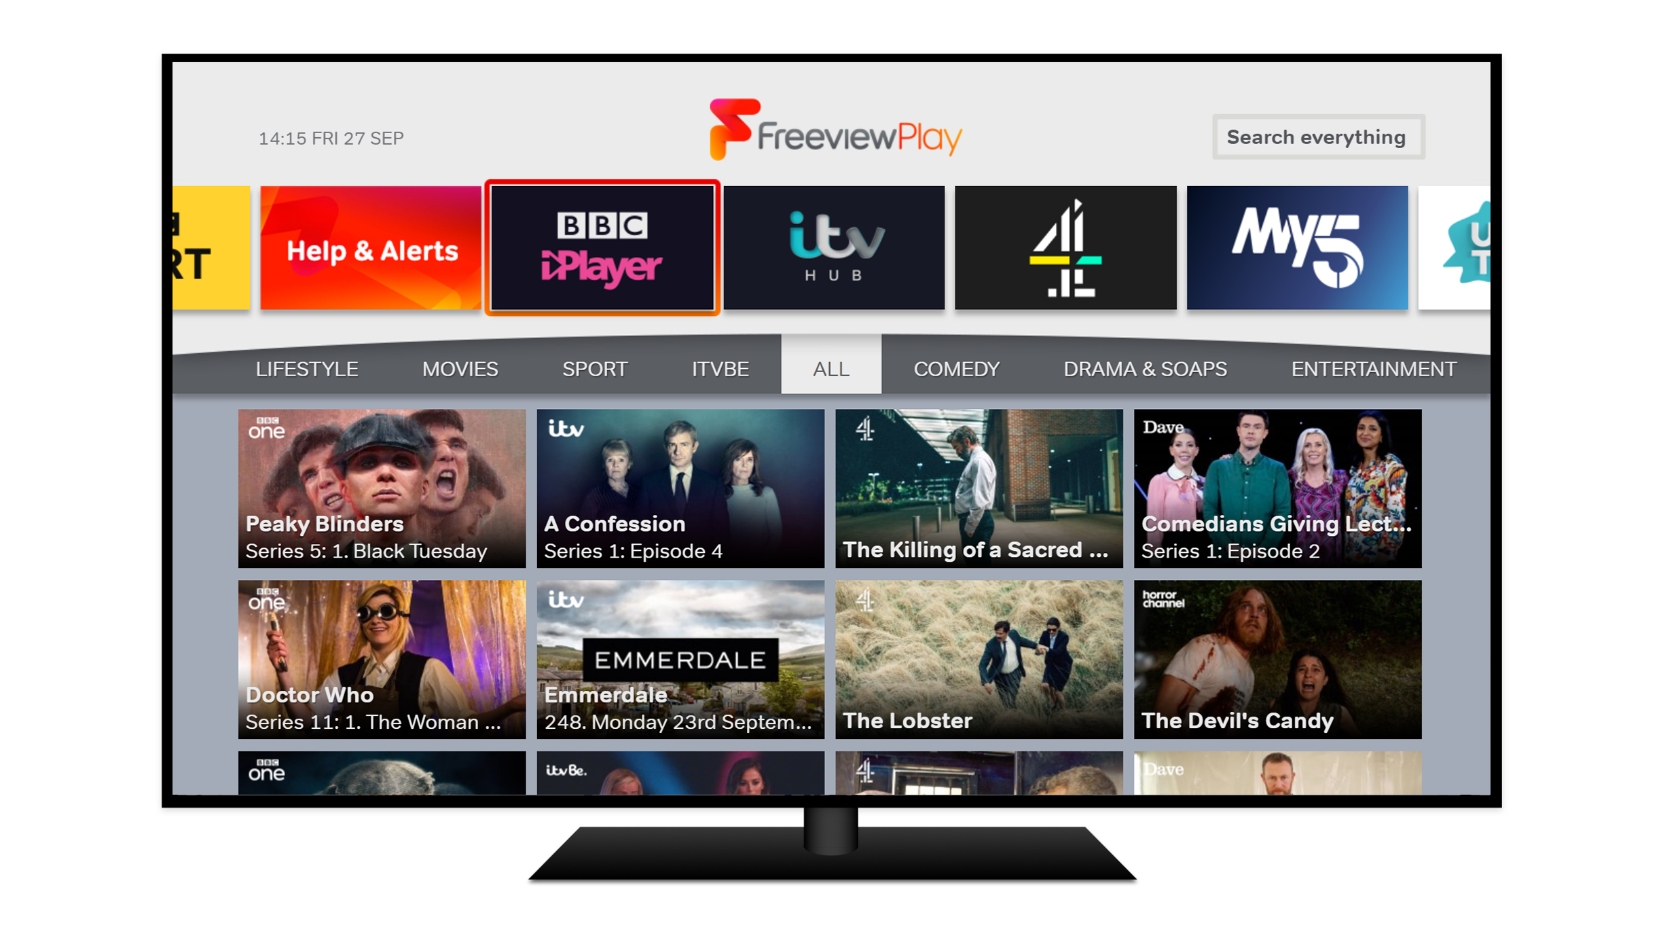 TV showing the Explore Freeview Play interface, which pulls together all the content from BBC iPlayer, ITV Hub, All4, My5, UKTV Play, and the CBS Players in one place